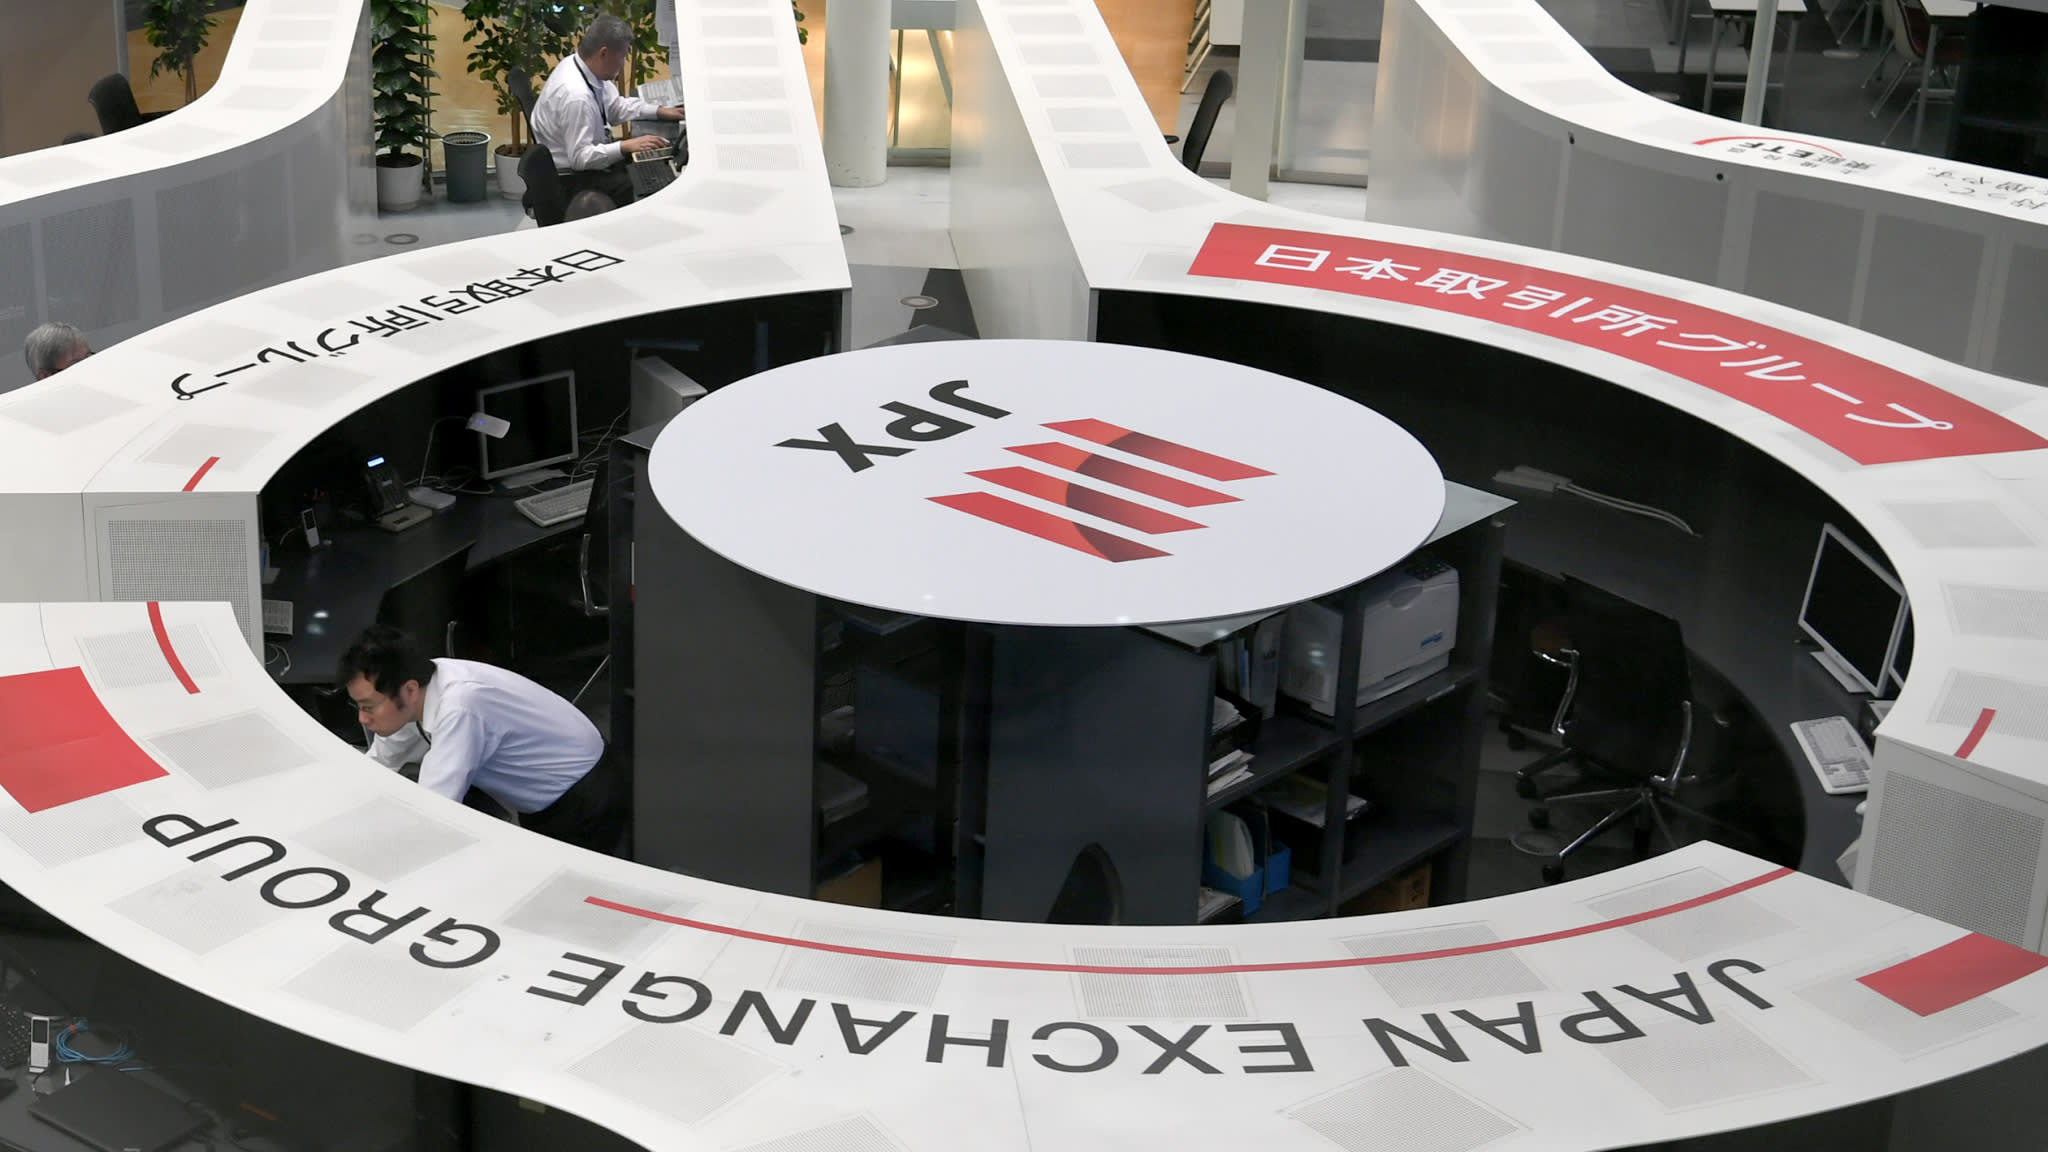 Login glitch behind Tokyo Stock Exchange snafu - Nikkei Asian Review